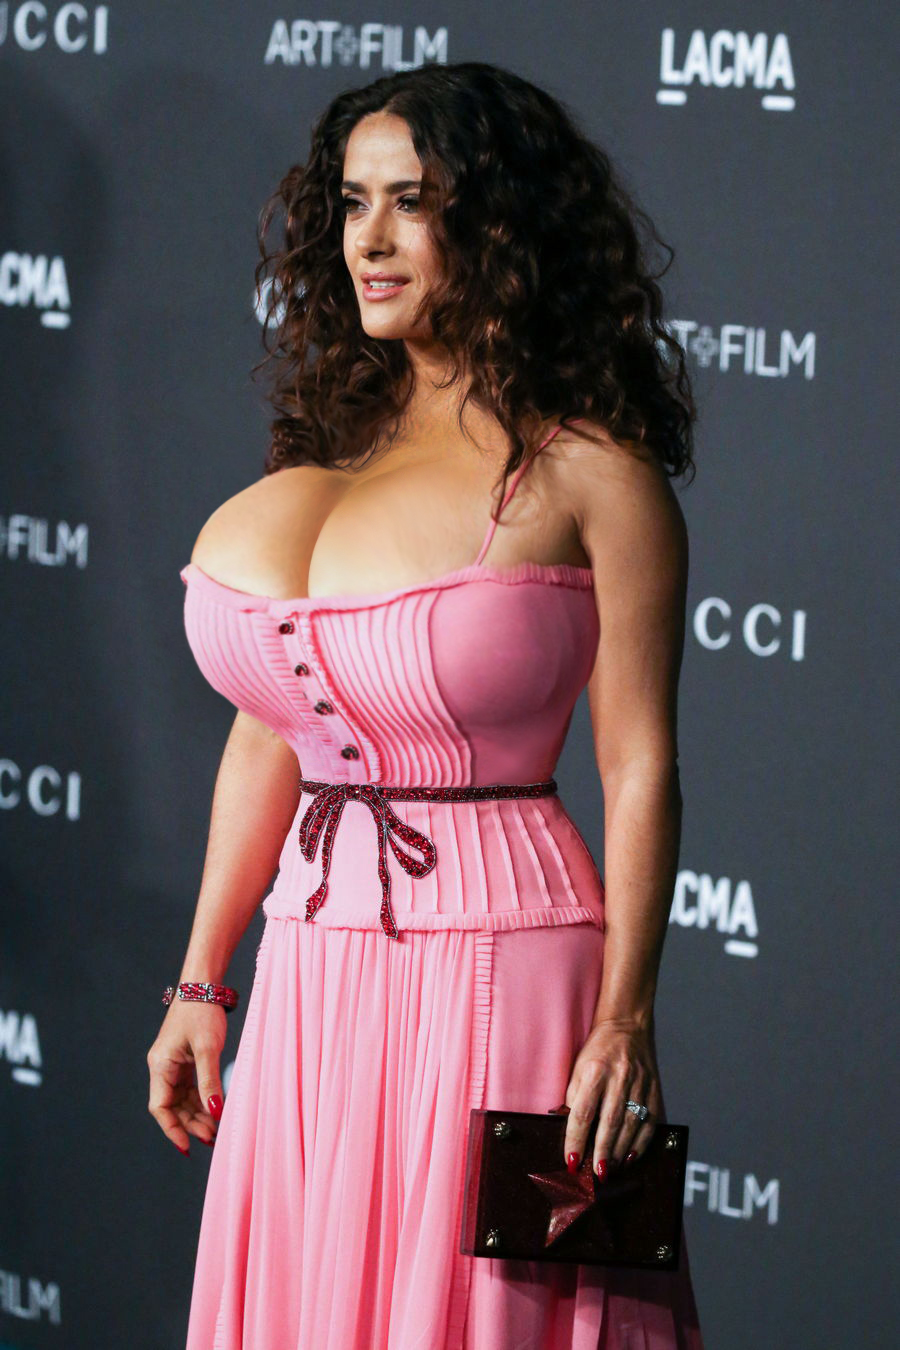 Salma Hayek arrives at the LACMA 2015 Art + Film Gala